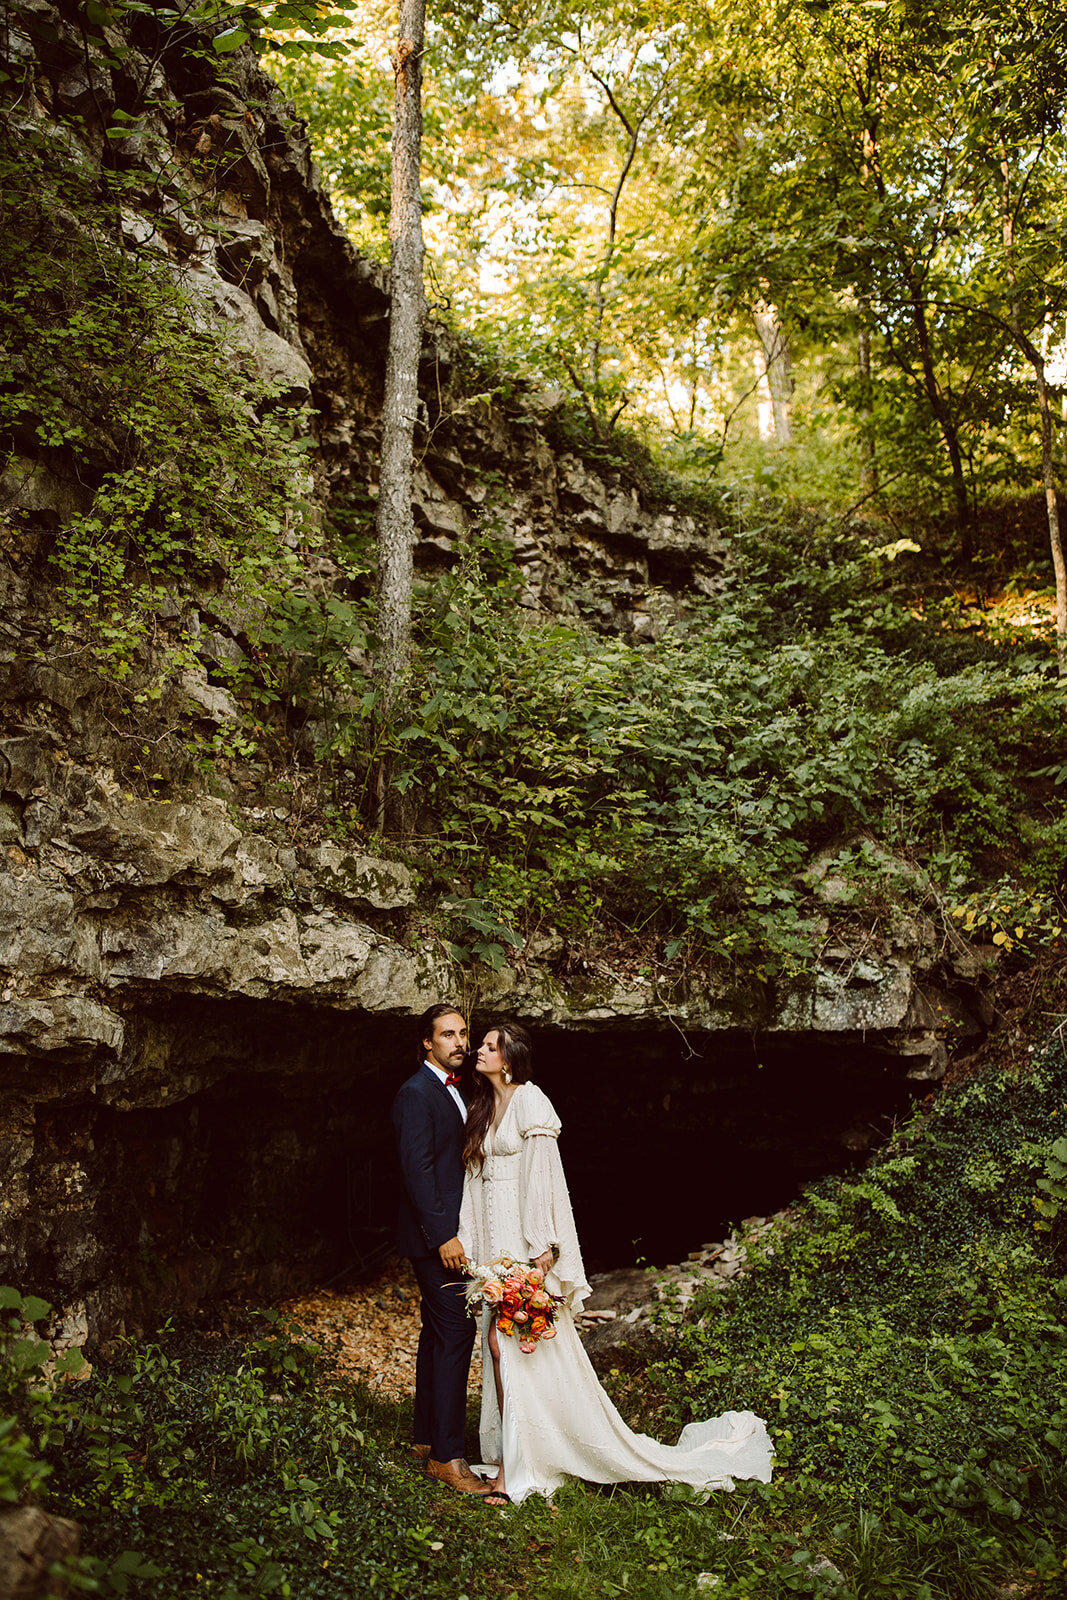 cave elopement with bright wedding bouqet